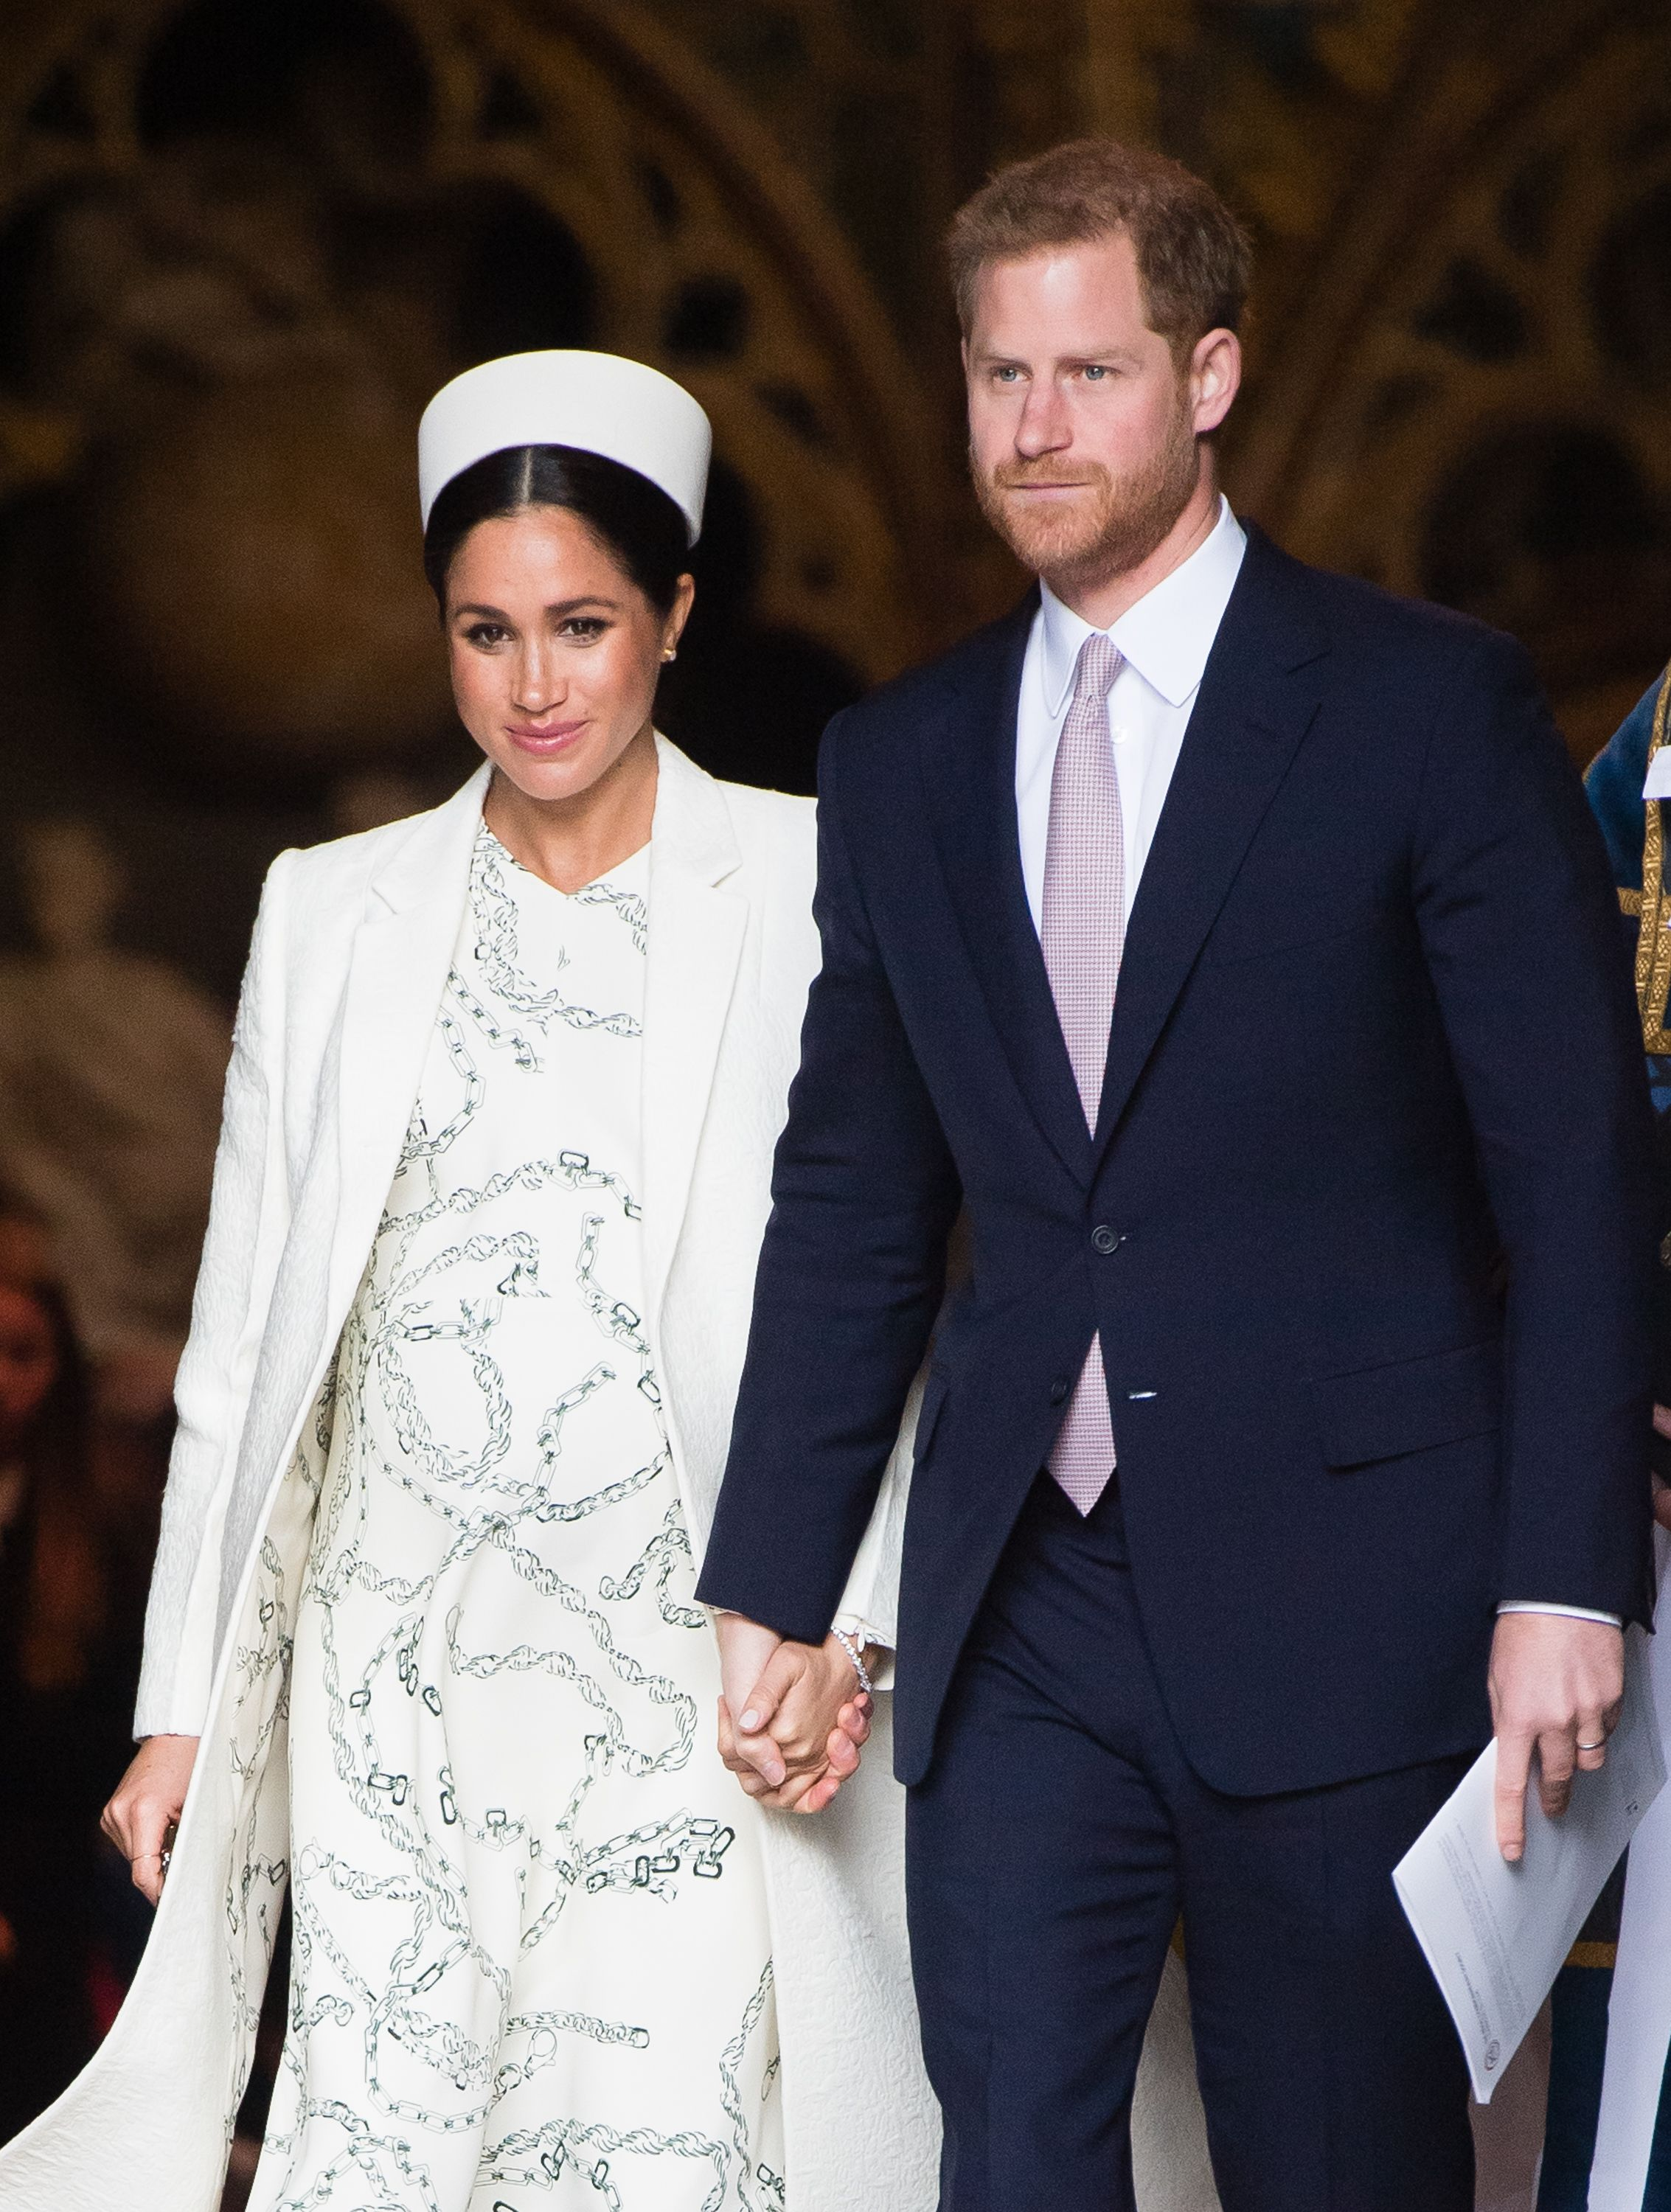 The Queen Stopped Meghan Markle & Prince Harry Being